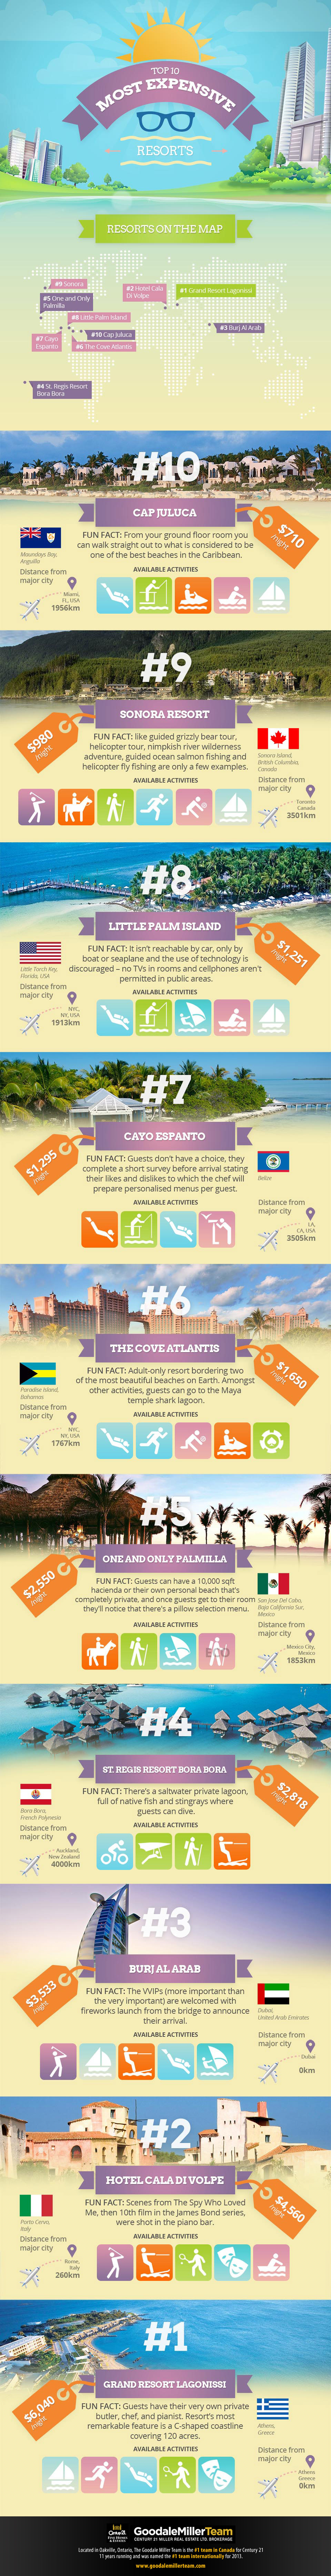 Top 10 most expensive luxury resorts in the world for Luxury resorts in the world